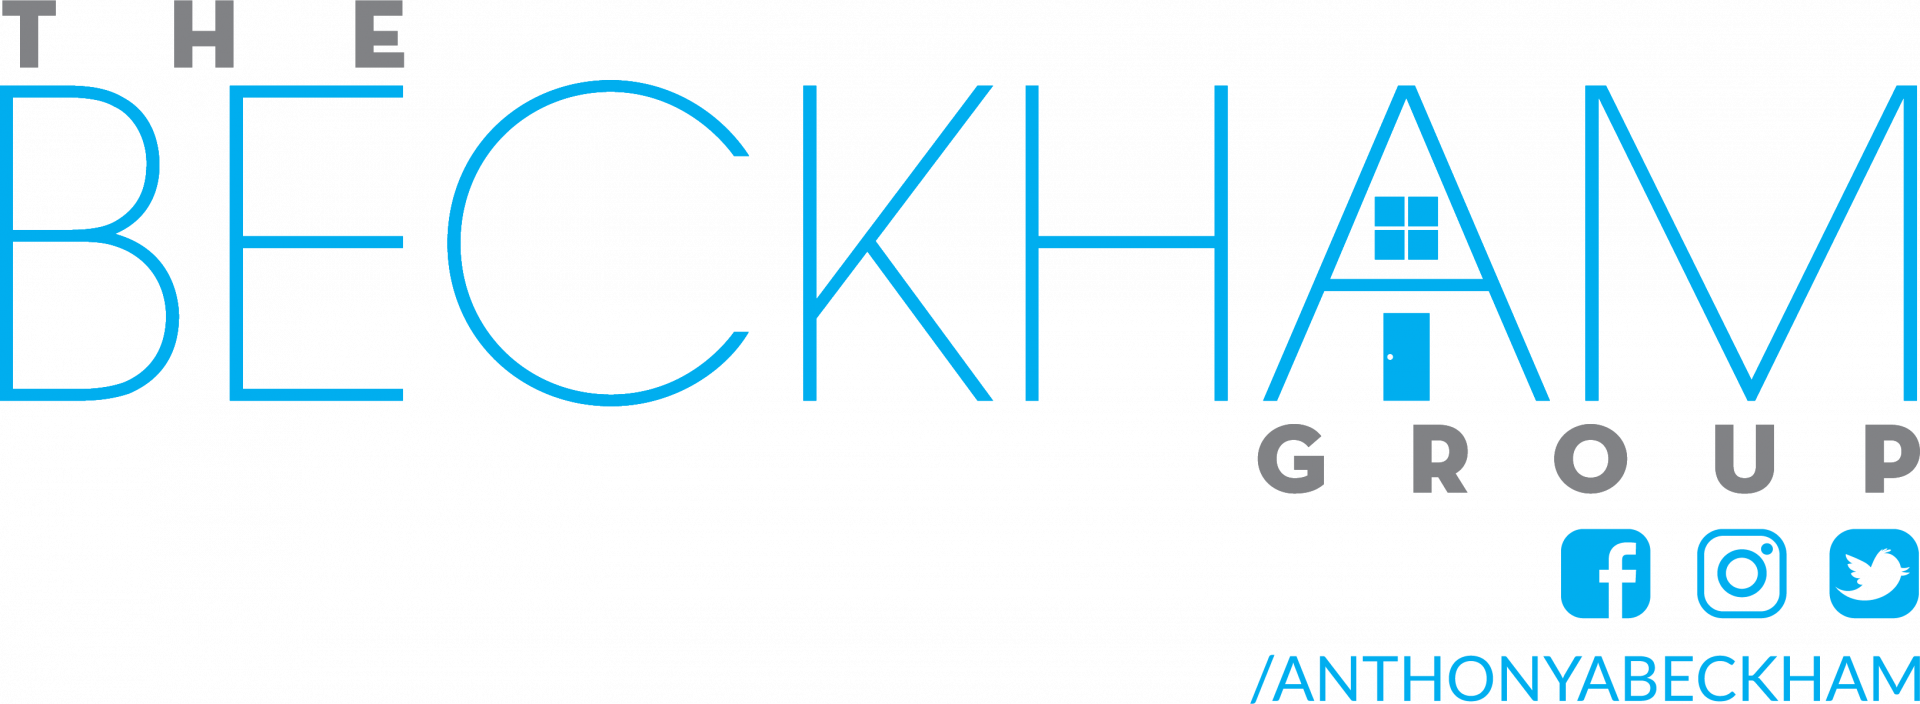 The Beckham Group logo